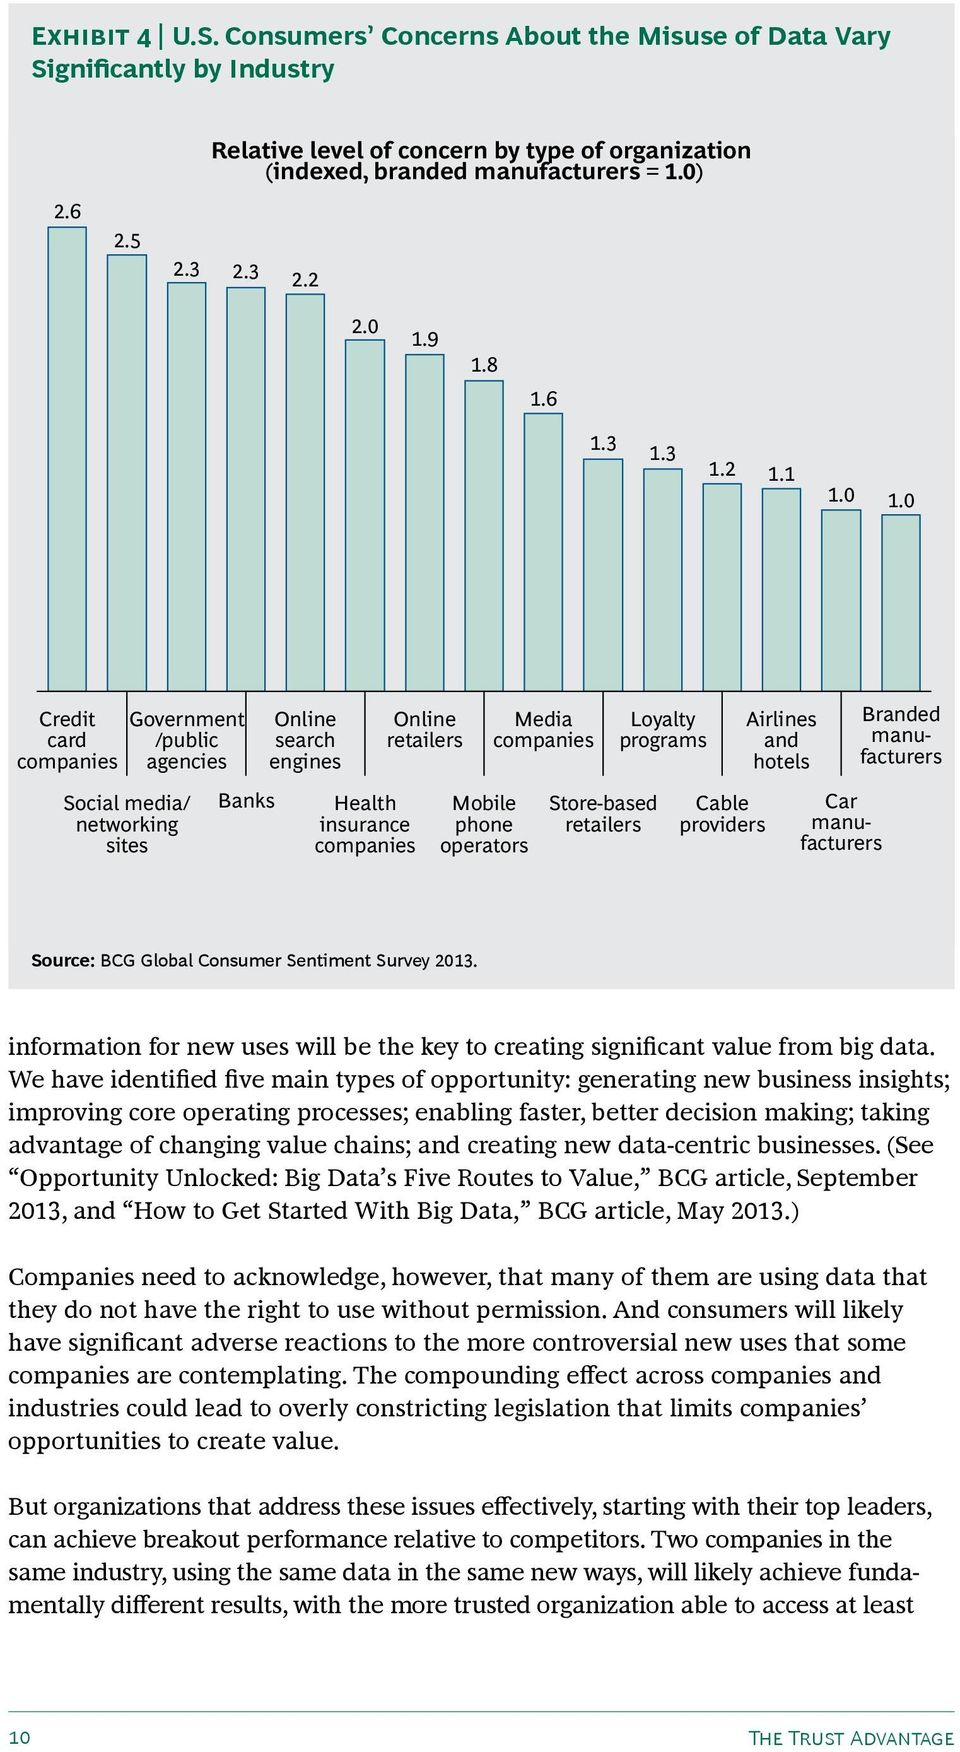 phone operators Media companies Store-based retailers Loyalty programs Cable providers Airlines and hotels Car manufacturers Branded manufacturers Source: BCG Global Consumer Sentiment Survey 2013.